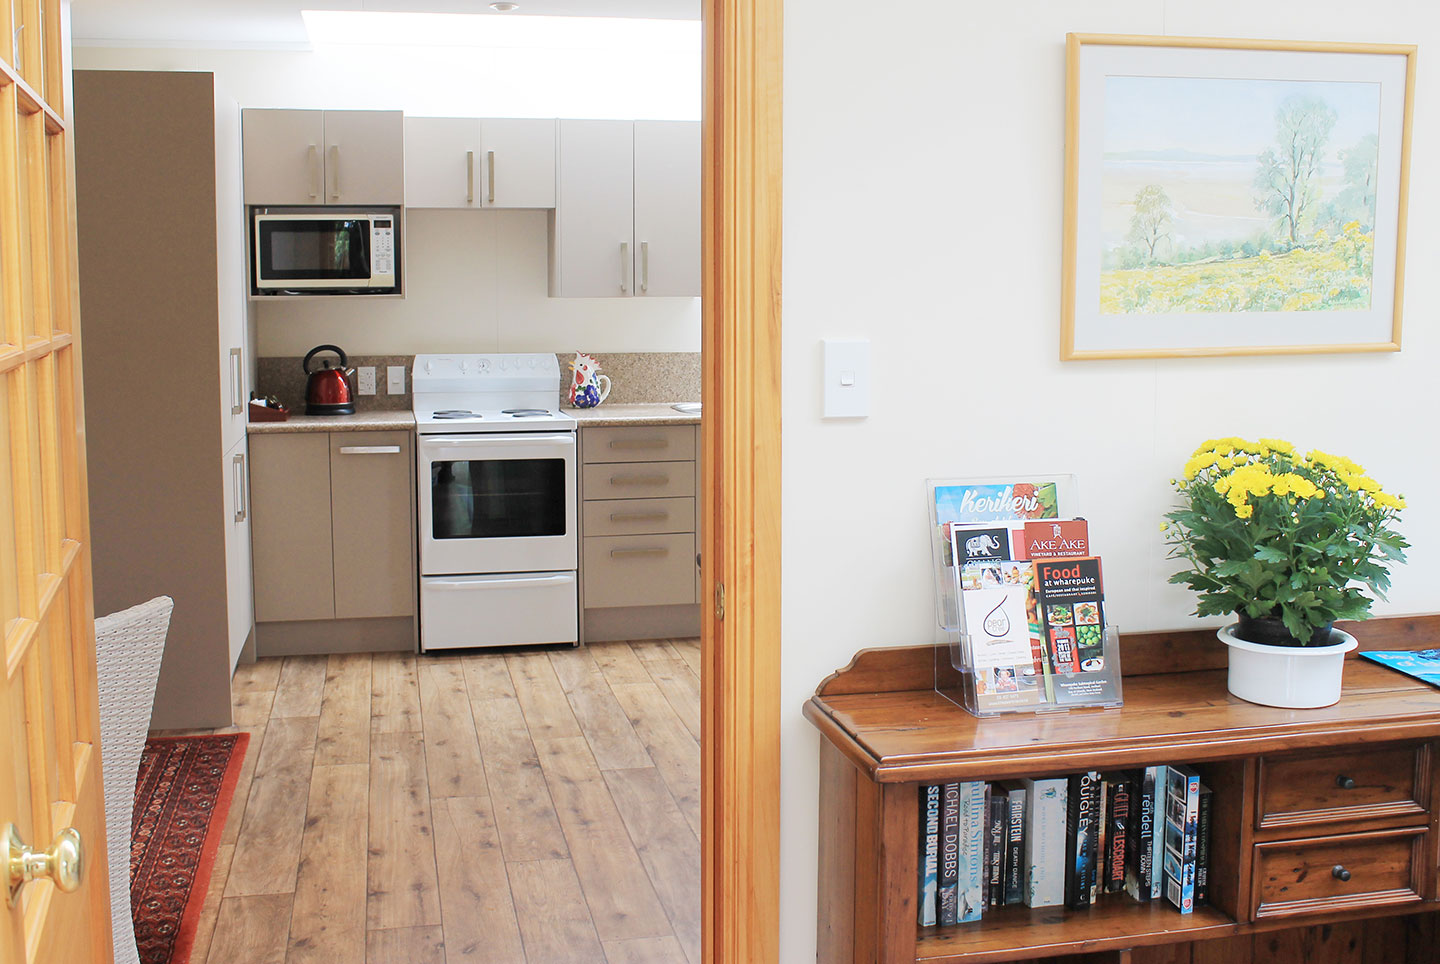 Fully equipped kitchen at the carriage house self catering accommodation kerikeri